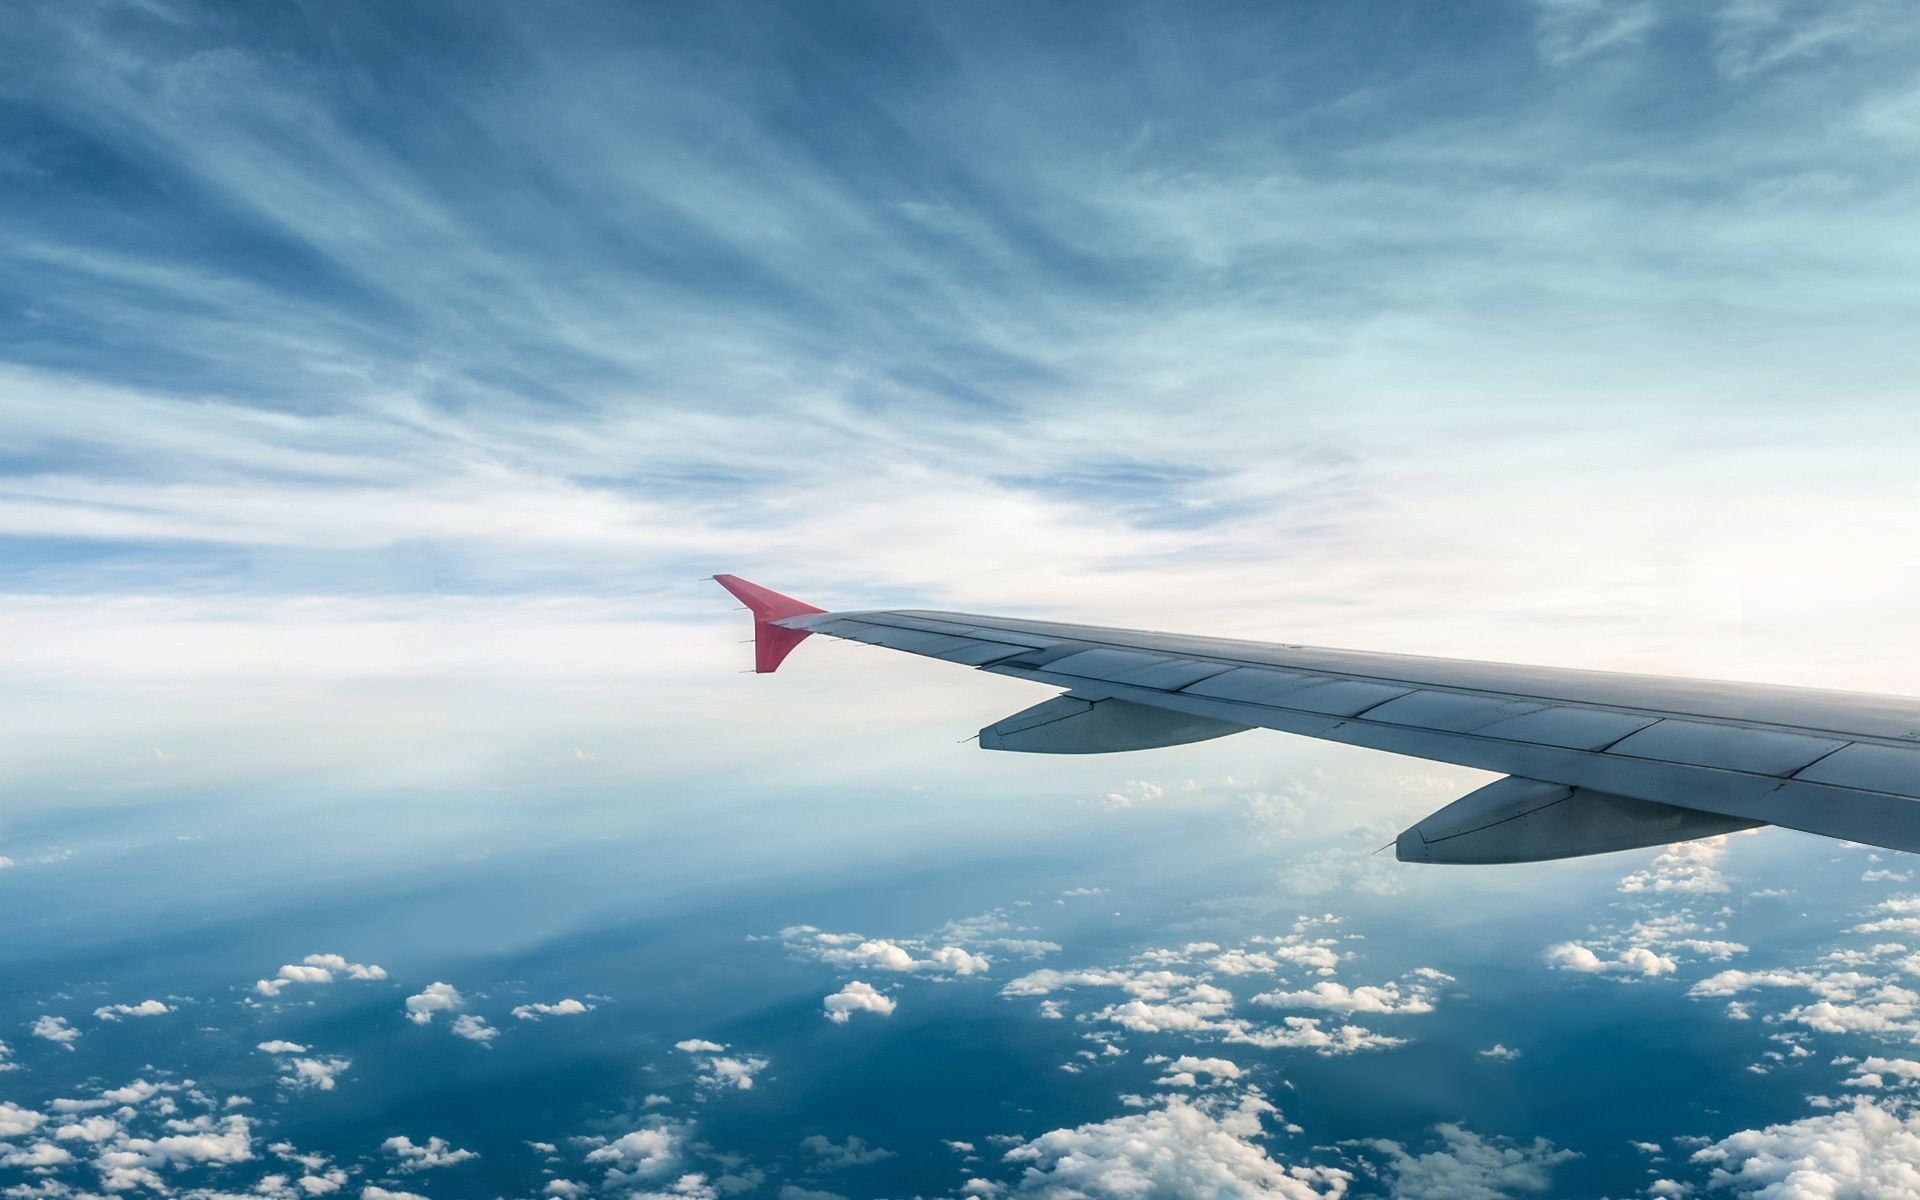 Aeroplane For Pc Travel Pictures Travel Wallpaper Airplane Wallpaper